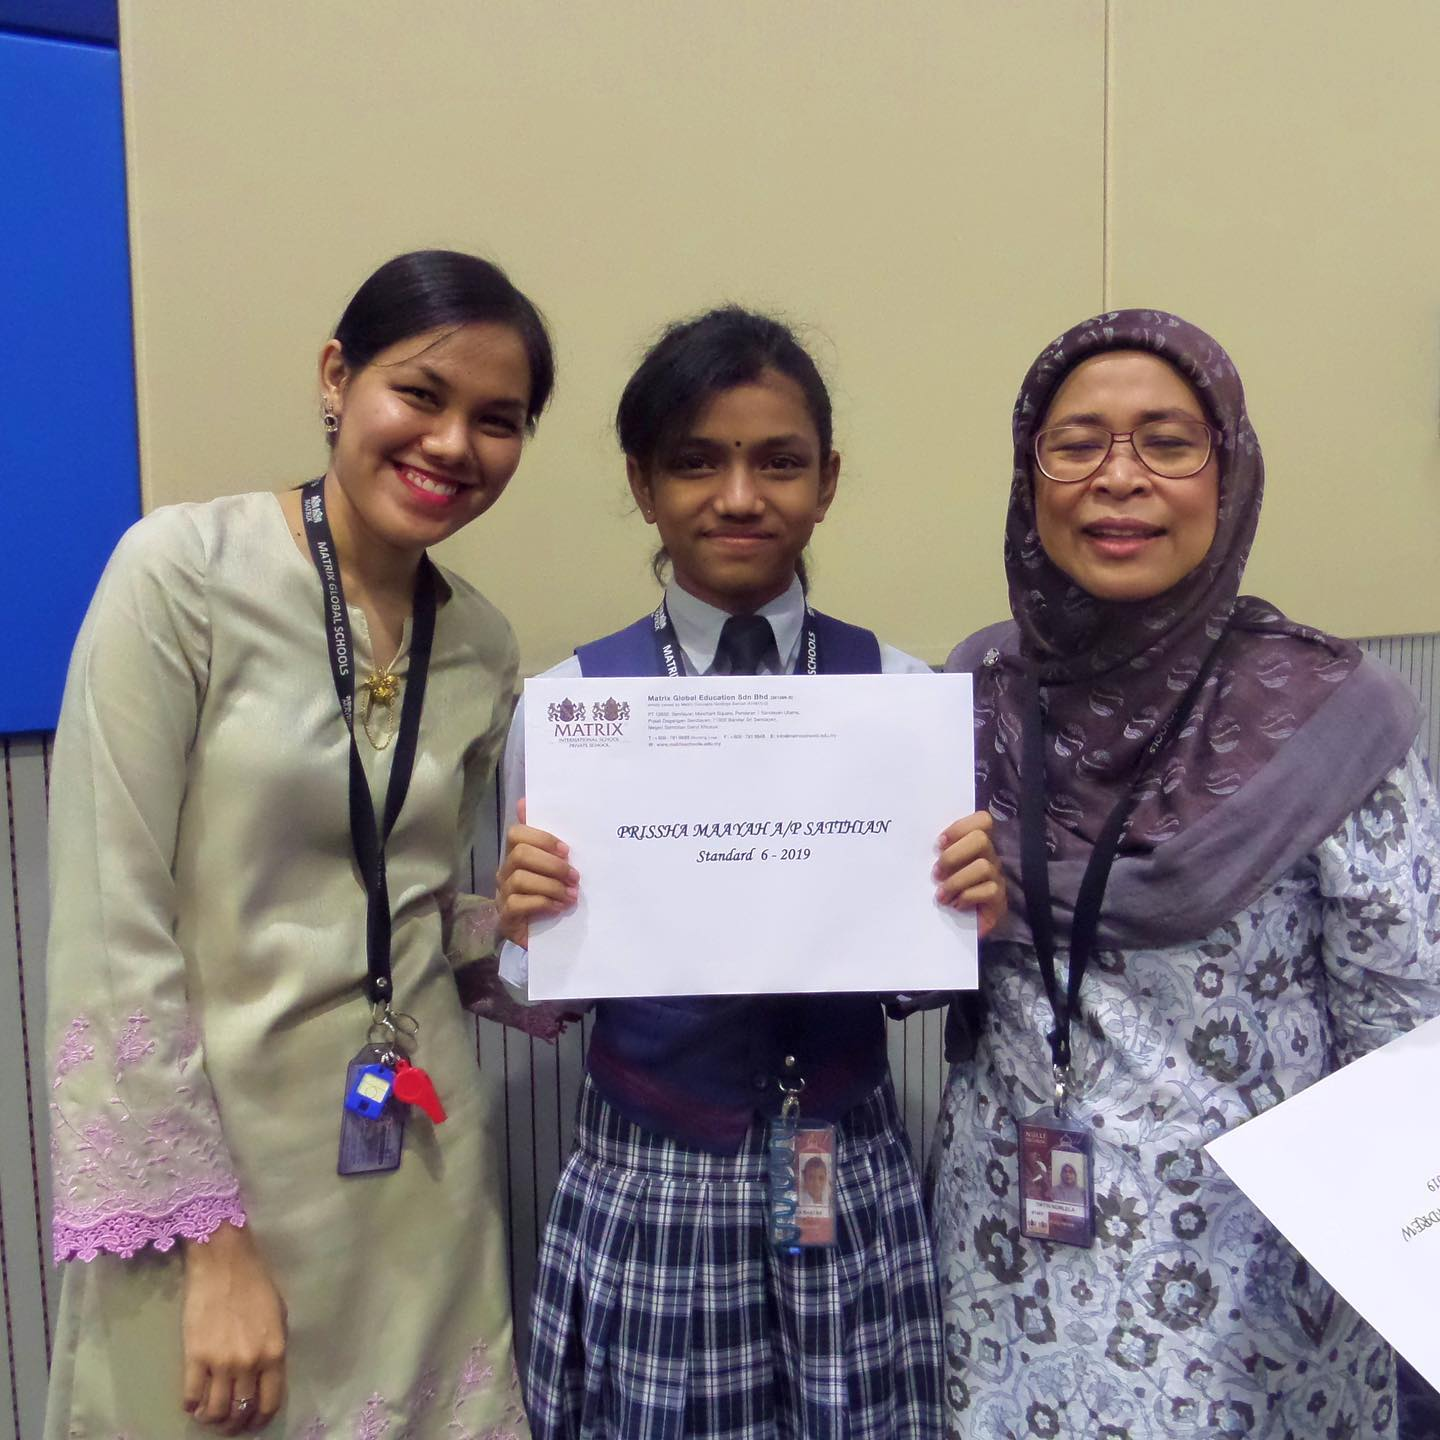 students holding the certificate taking photo with teachers